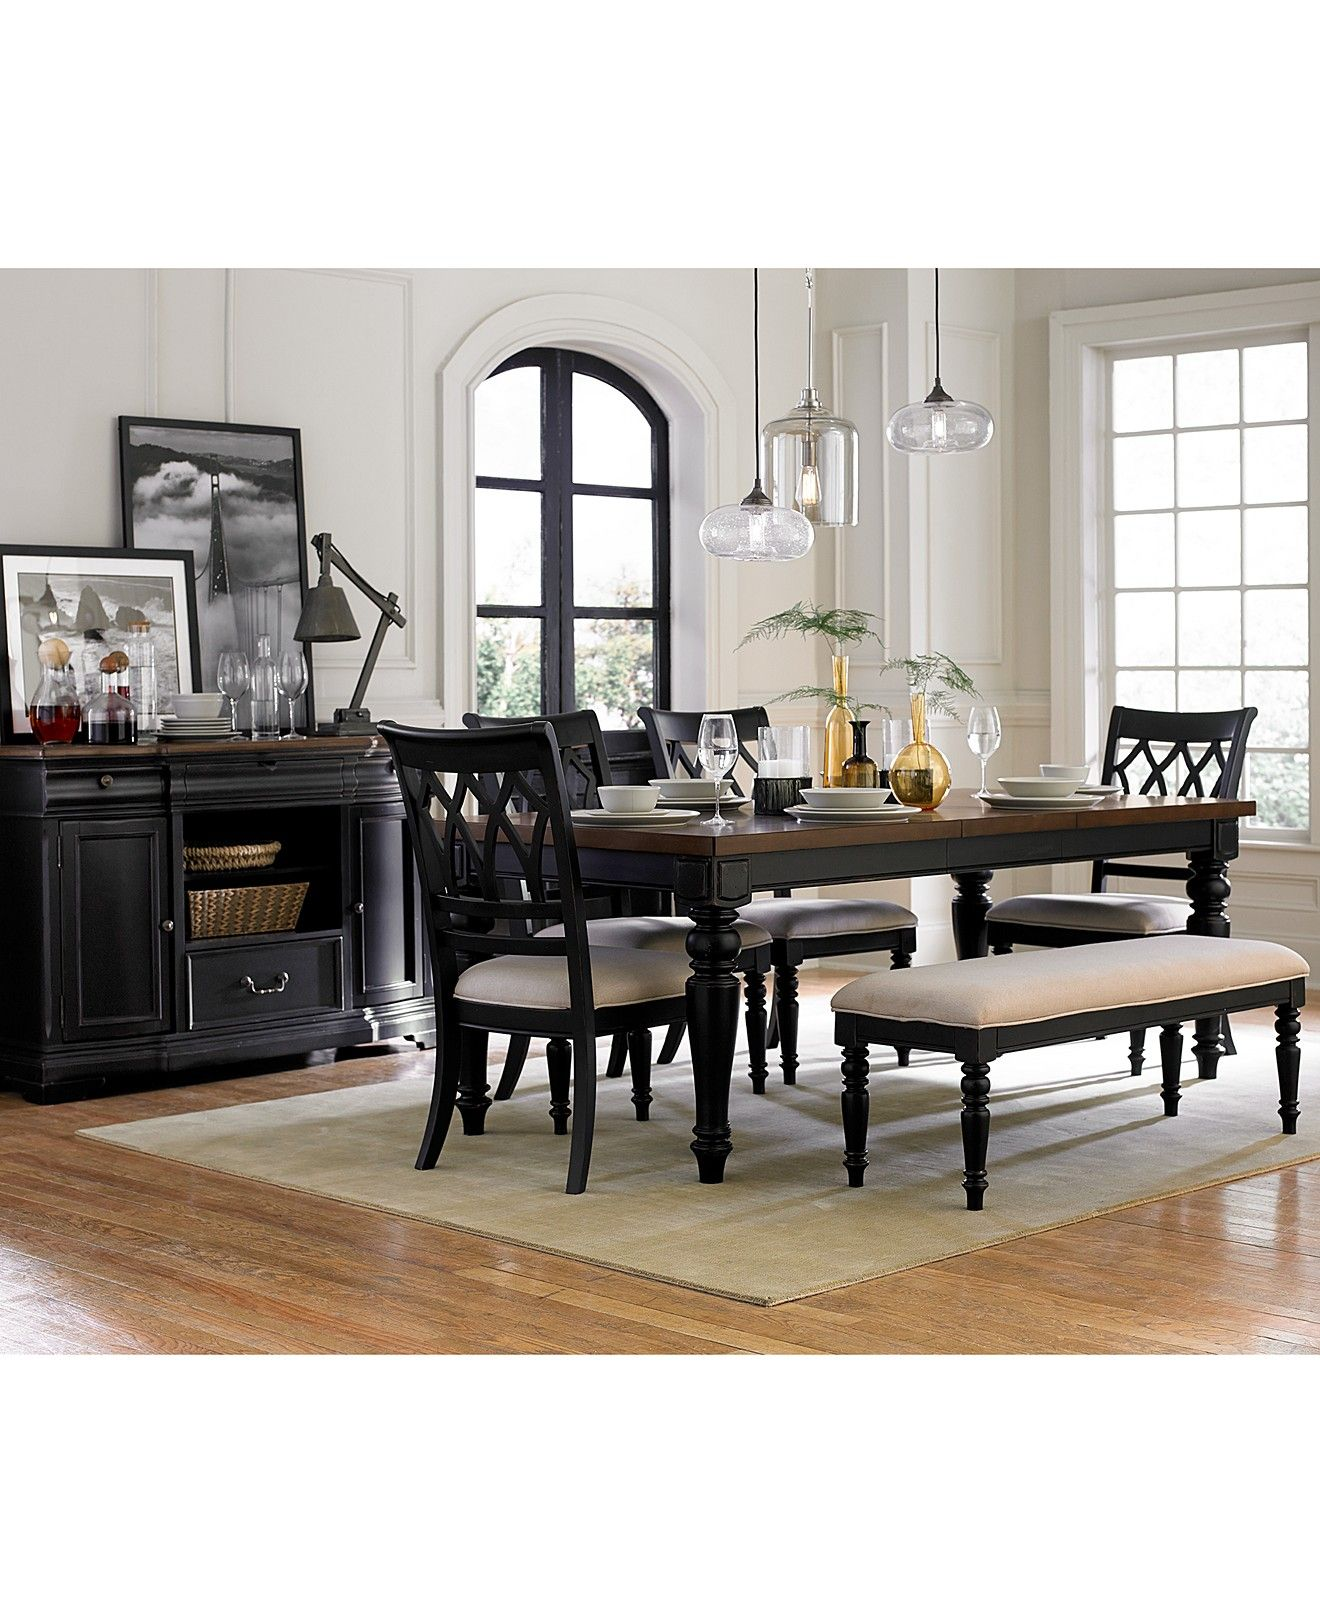 Dining Room Furniture Online: Durango Dining Room Furniture Collection